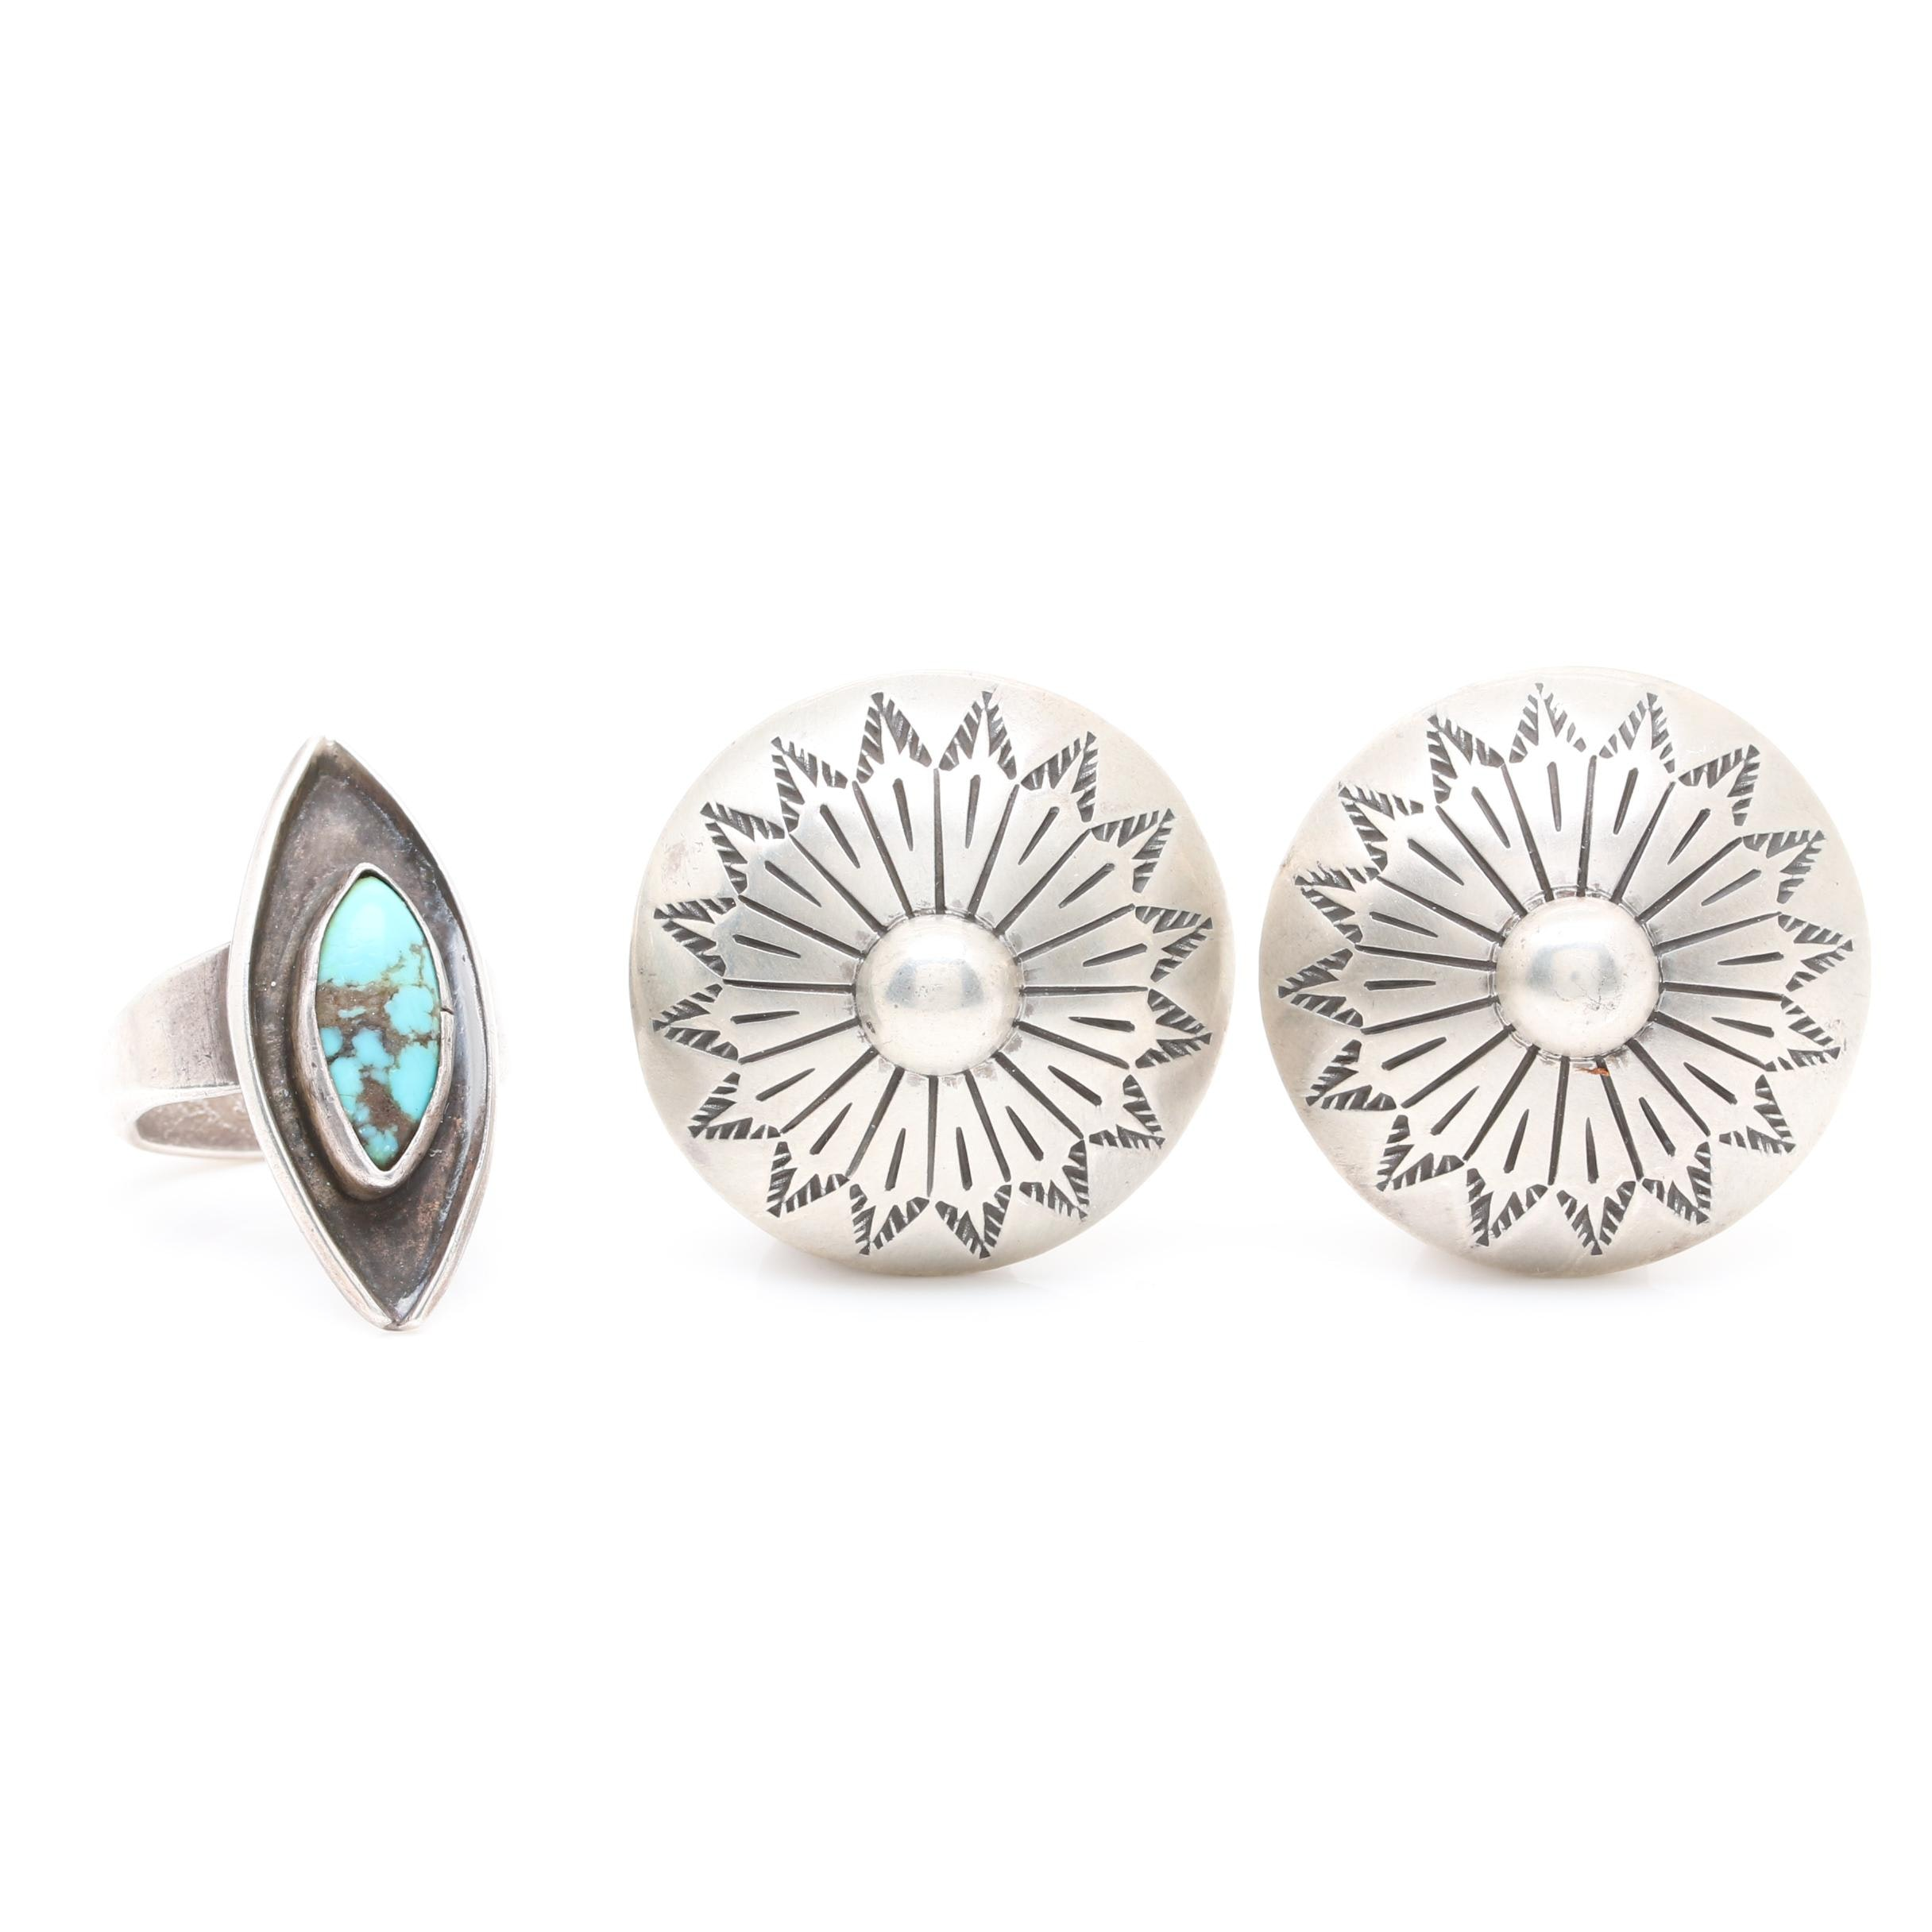 Kee Nataaini Navajo Diné Sterling Silver Concho Earrings with Turquoise Ring